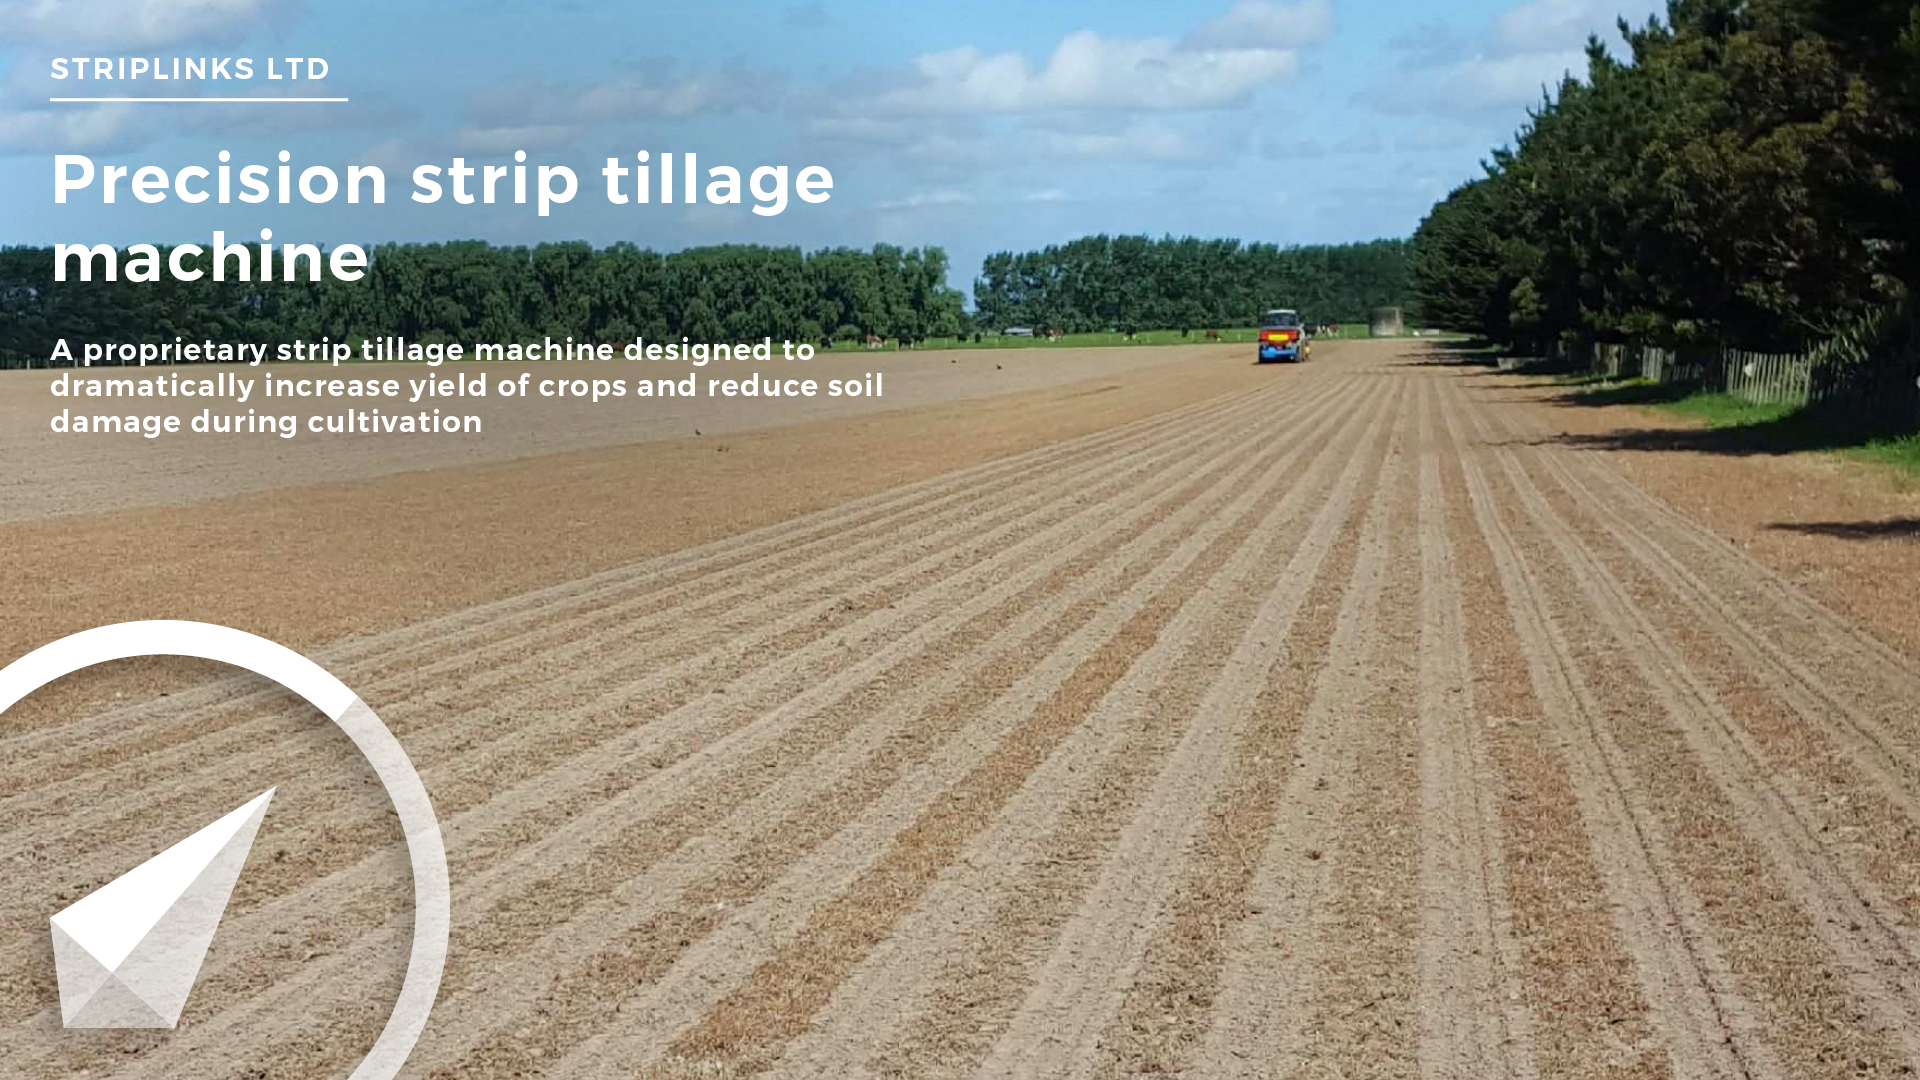 Sprout Alumni Precision Cultivation (formerly Striplinks)